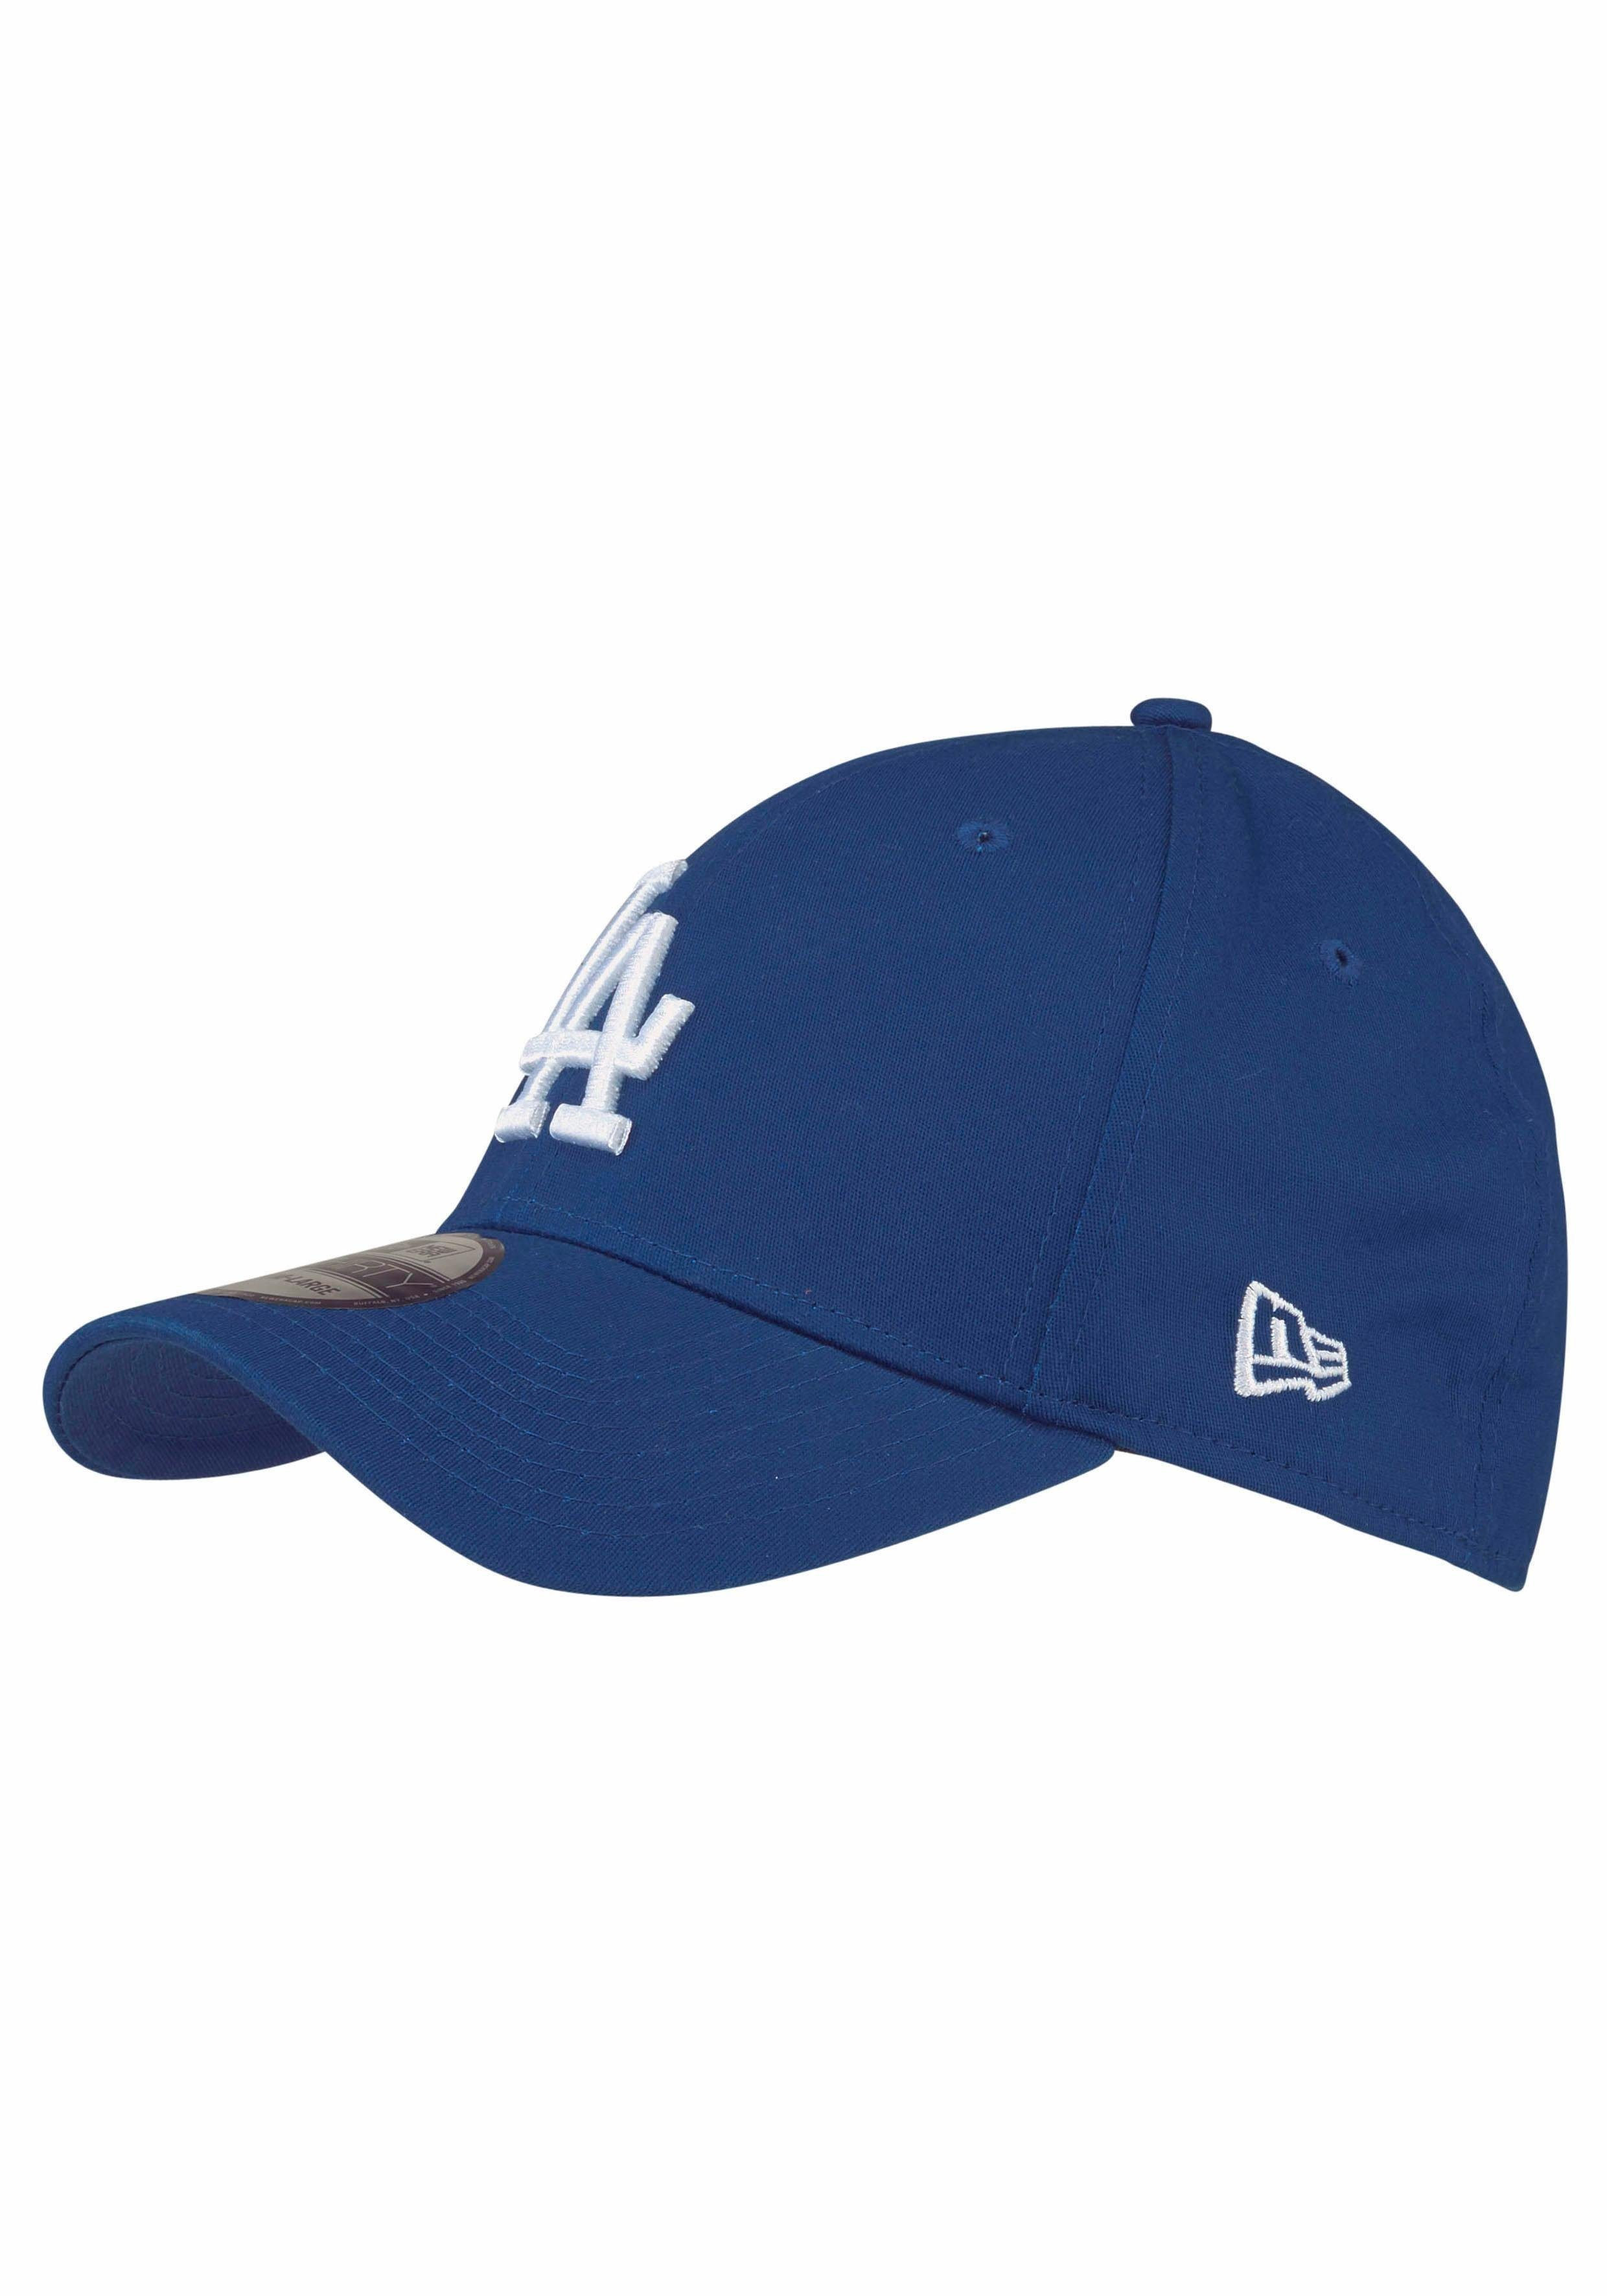 New Era Baseball Cap, 39Thirty, flexfitted, Los Angeles Dodgers